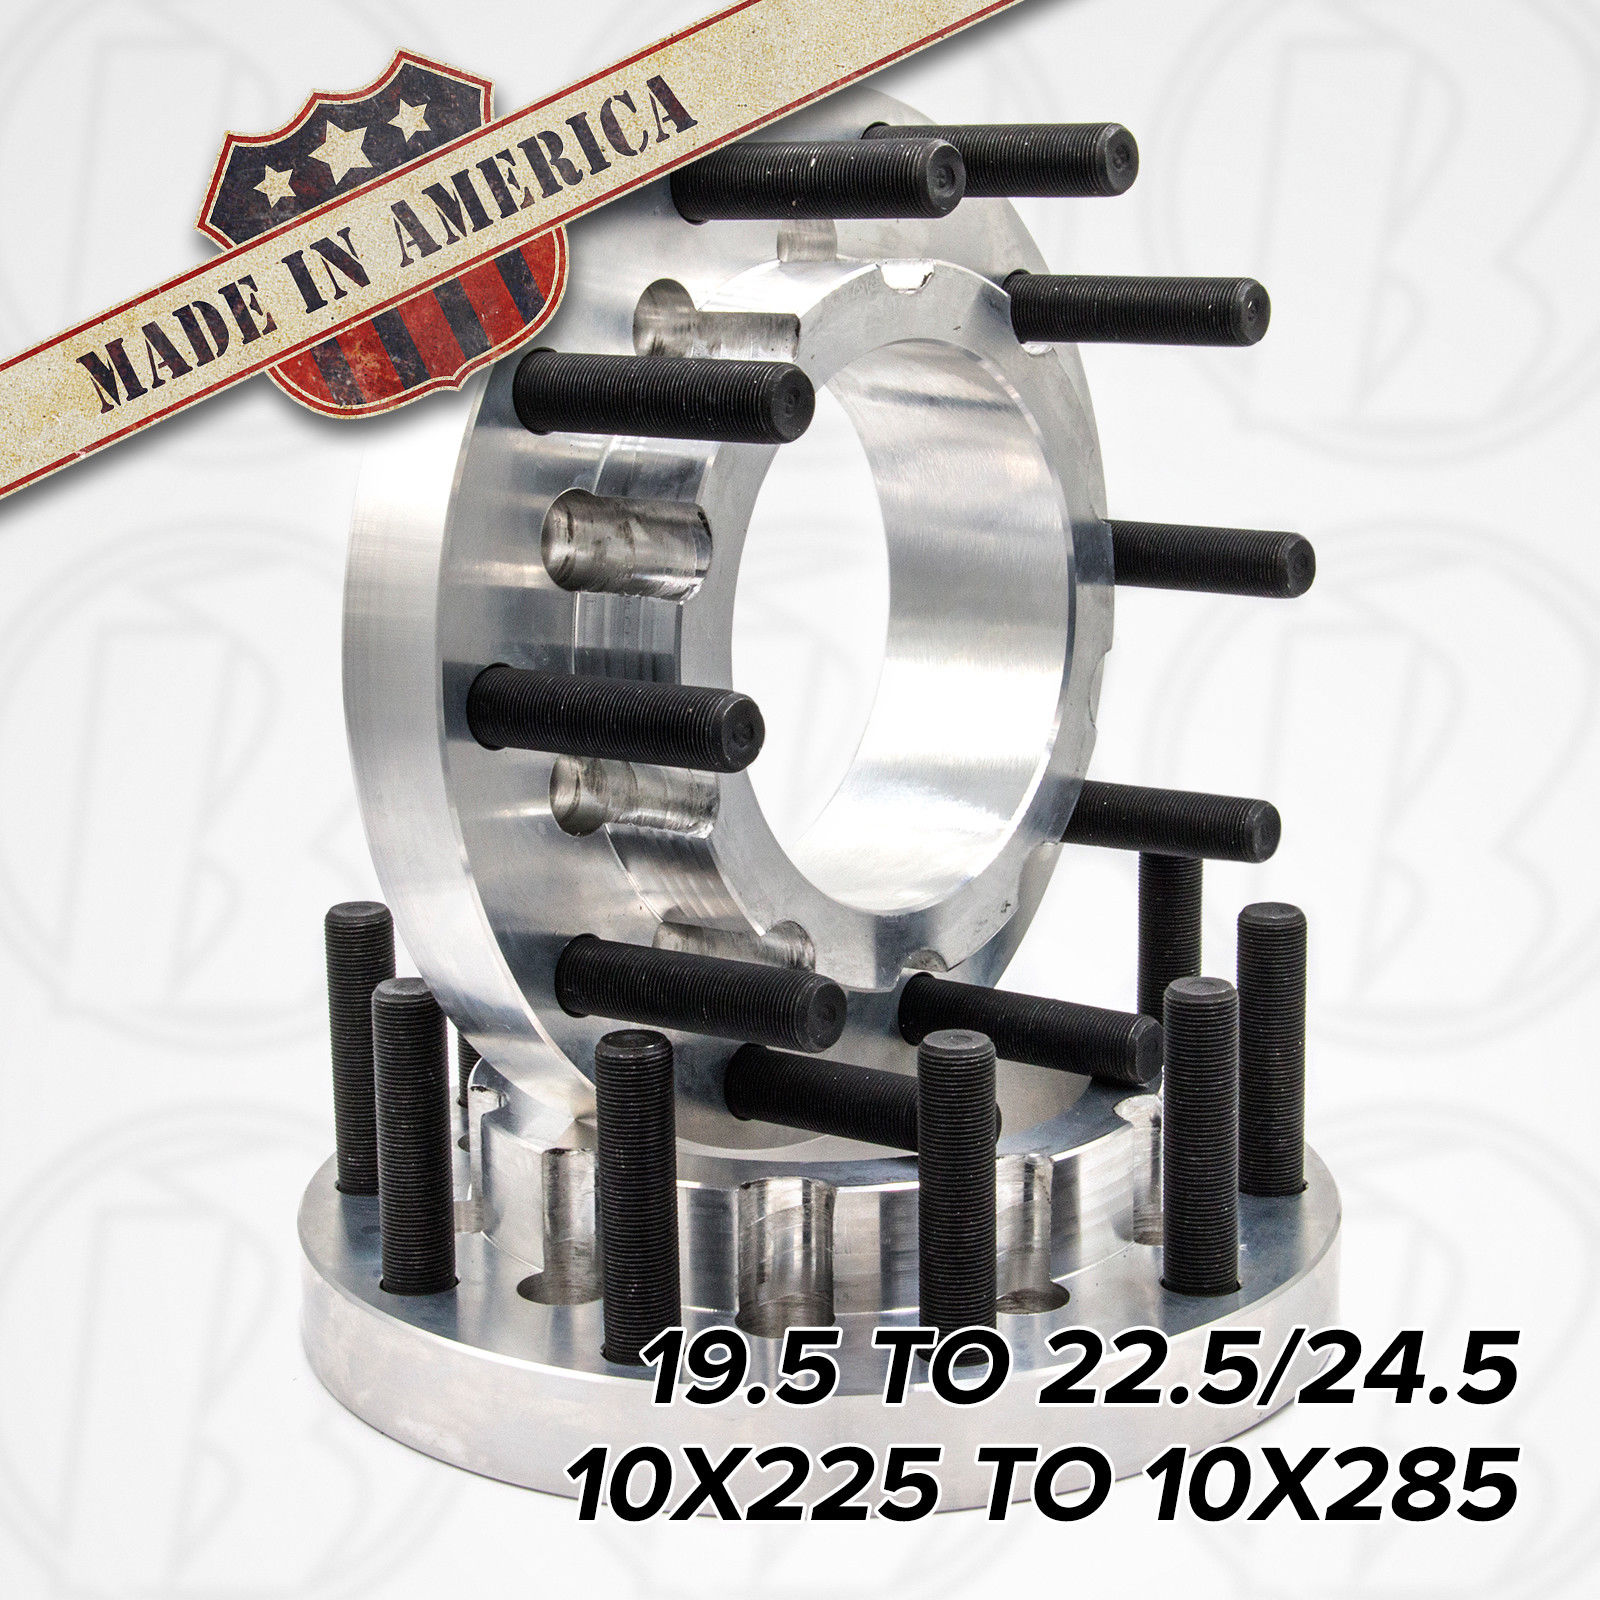 10x225 to 10x285 Wheel Adapter (Dually)